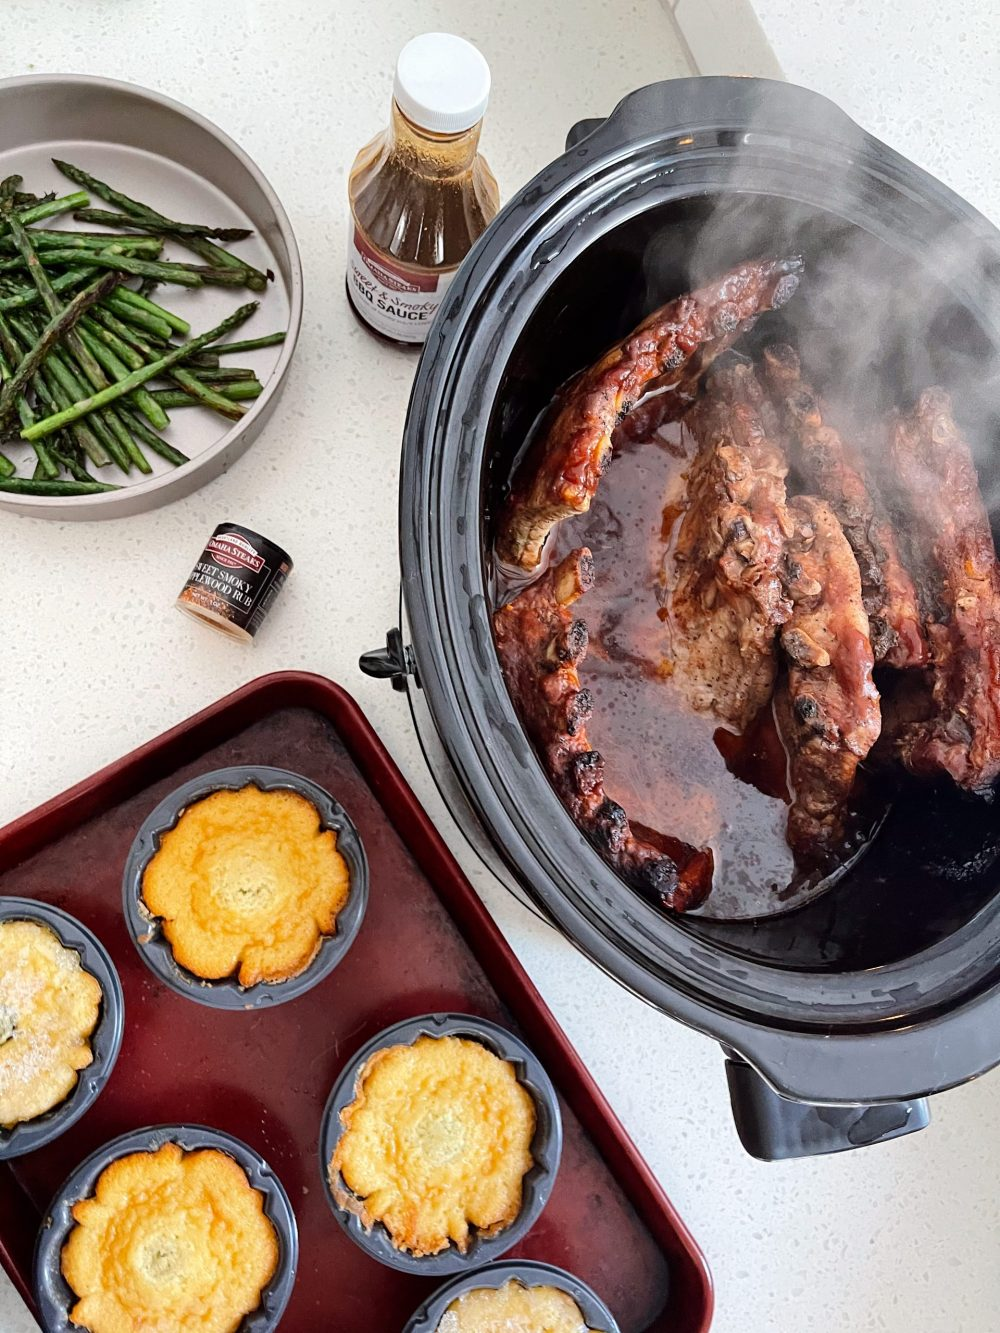 Omaha Steaks Meals featured by top FL lifestyle blogger, Tabitha Blue of Fresh Mommy Blog. - Slow Cooker BBQ Ribs | Omaha Steaks Meals by popular Florida lifestyle blog, Fresh Mommy Blog: image of slow cooker ribs next to some cornbread muffins.